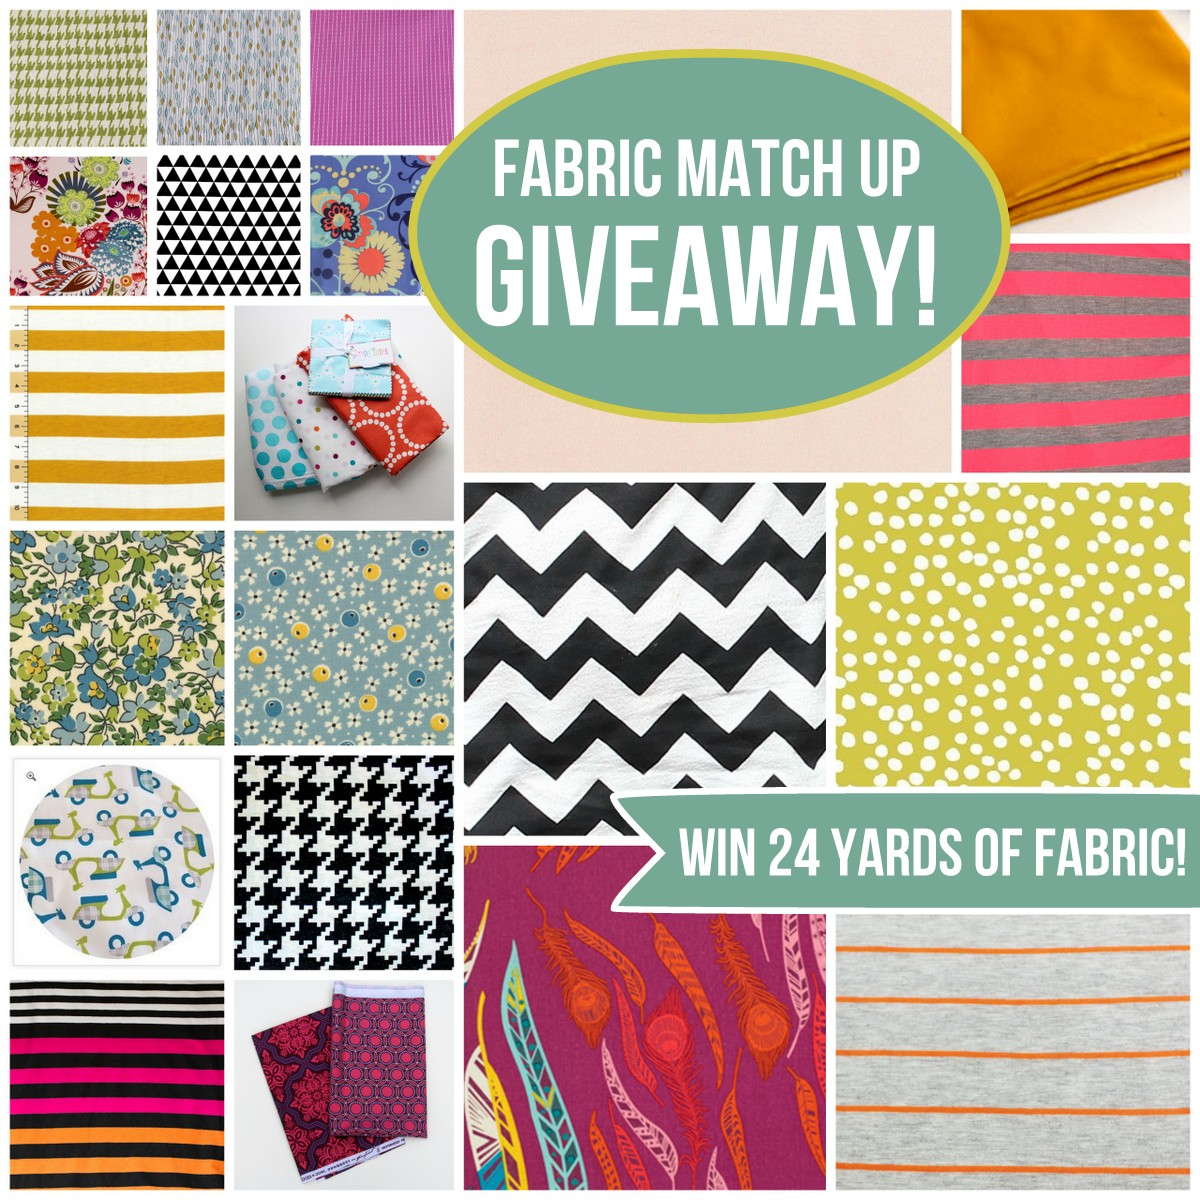 Match that Fabric Giveaway!